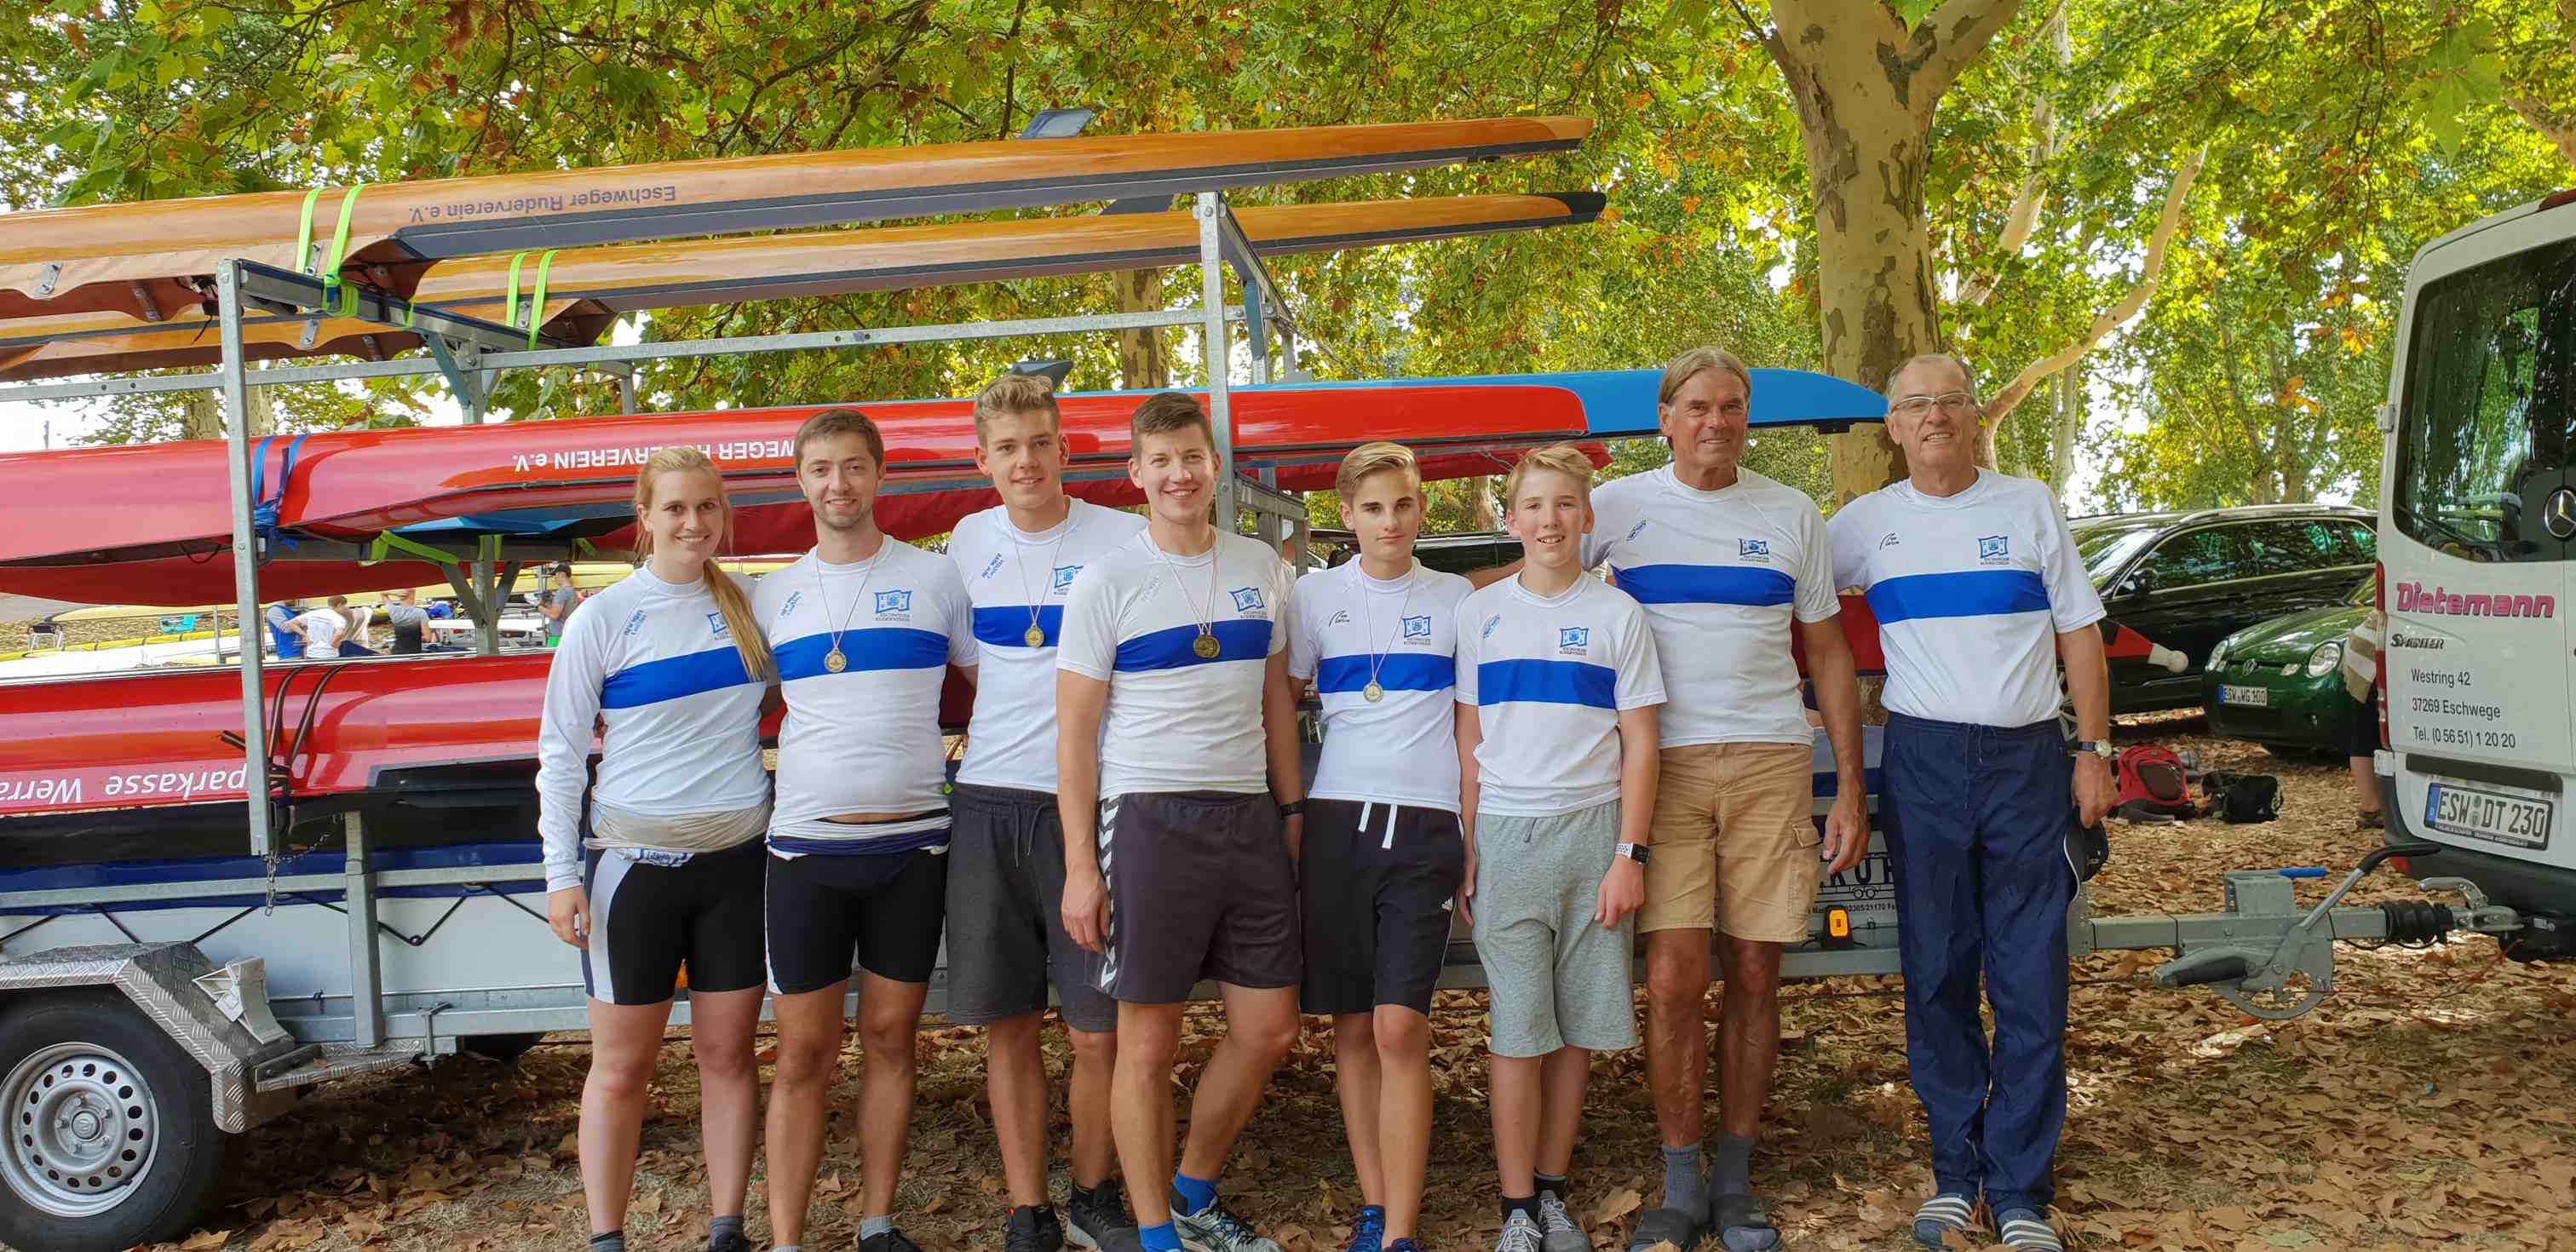 2018 09 08 Regatta Limburg